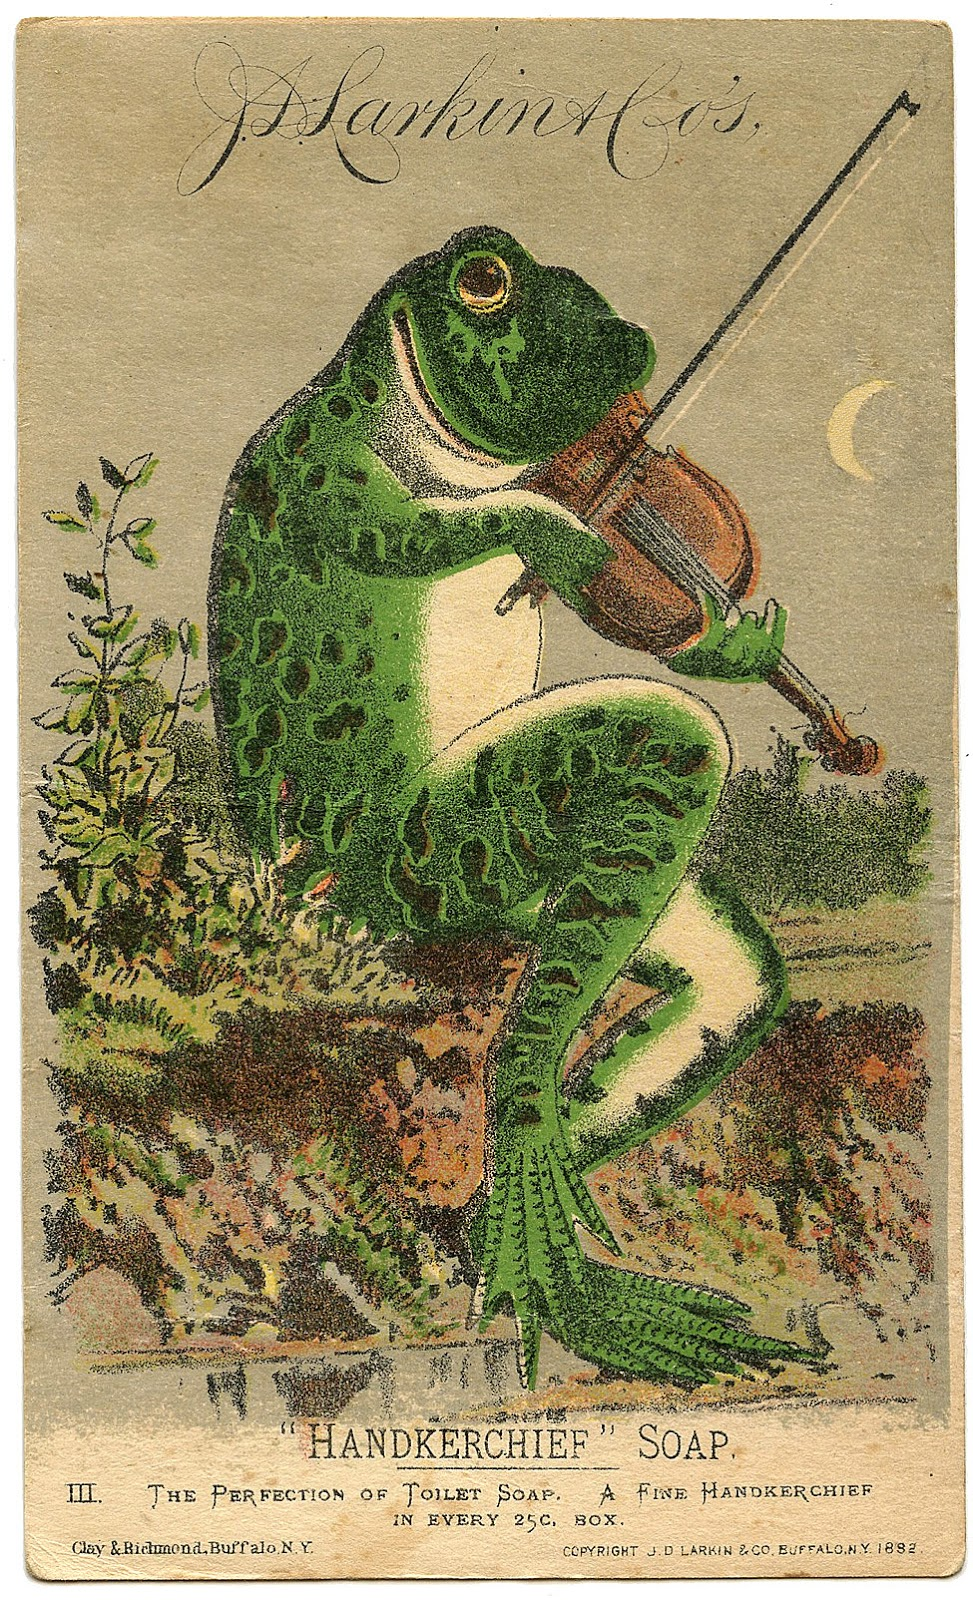 Vintage Image - Fabulous Frog with Violin - The Graphics Fairy